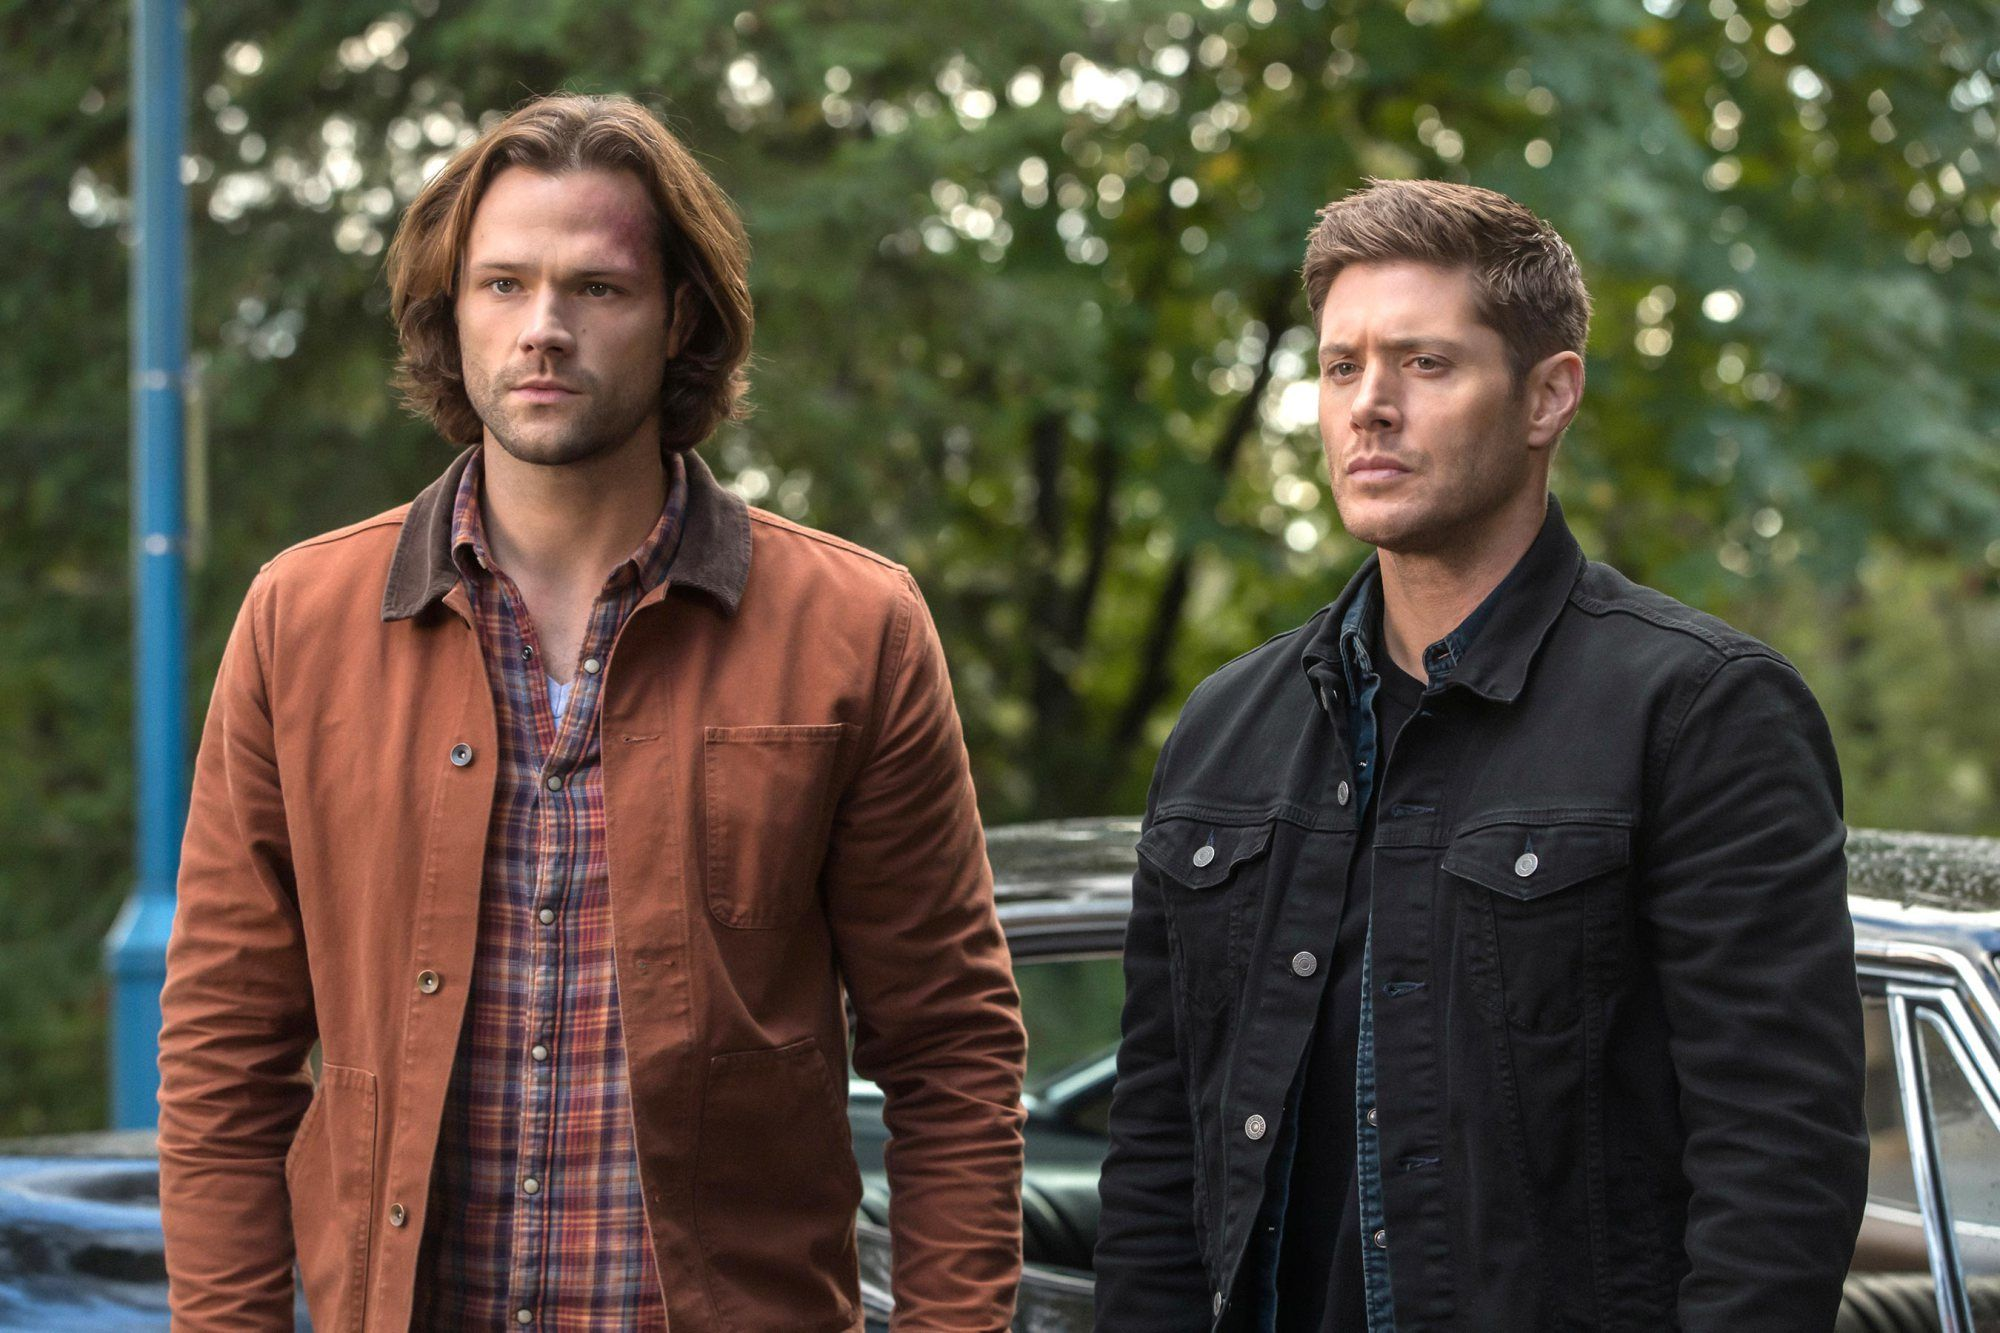 Supernatural final season first-look has fans asking lots of questions